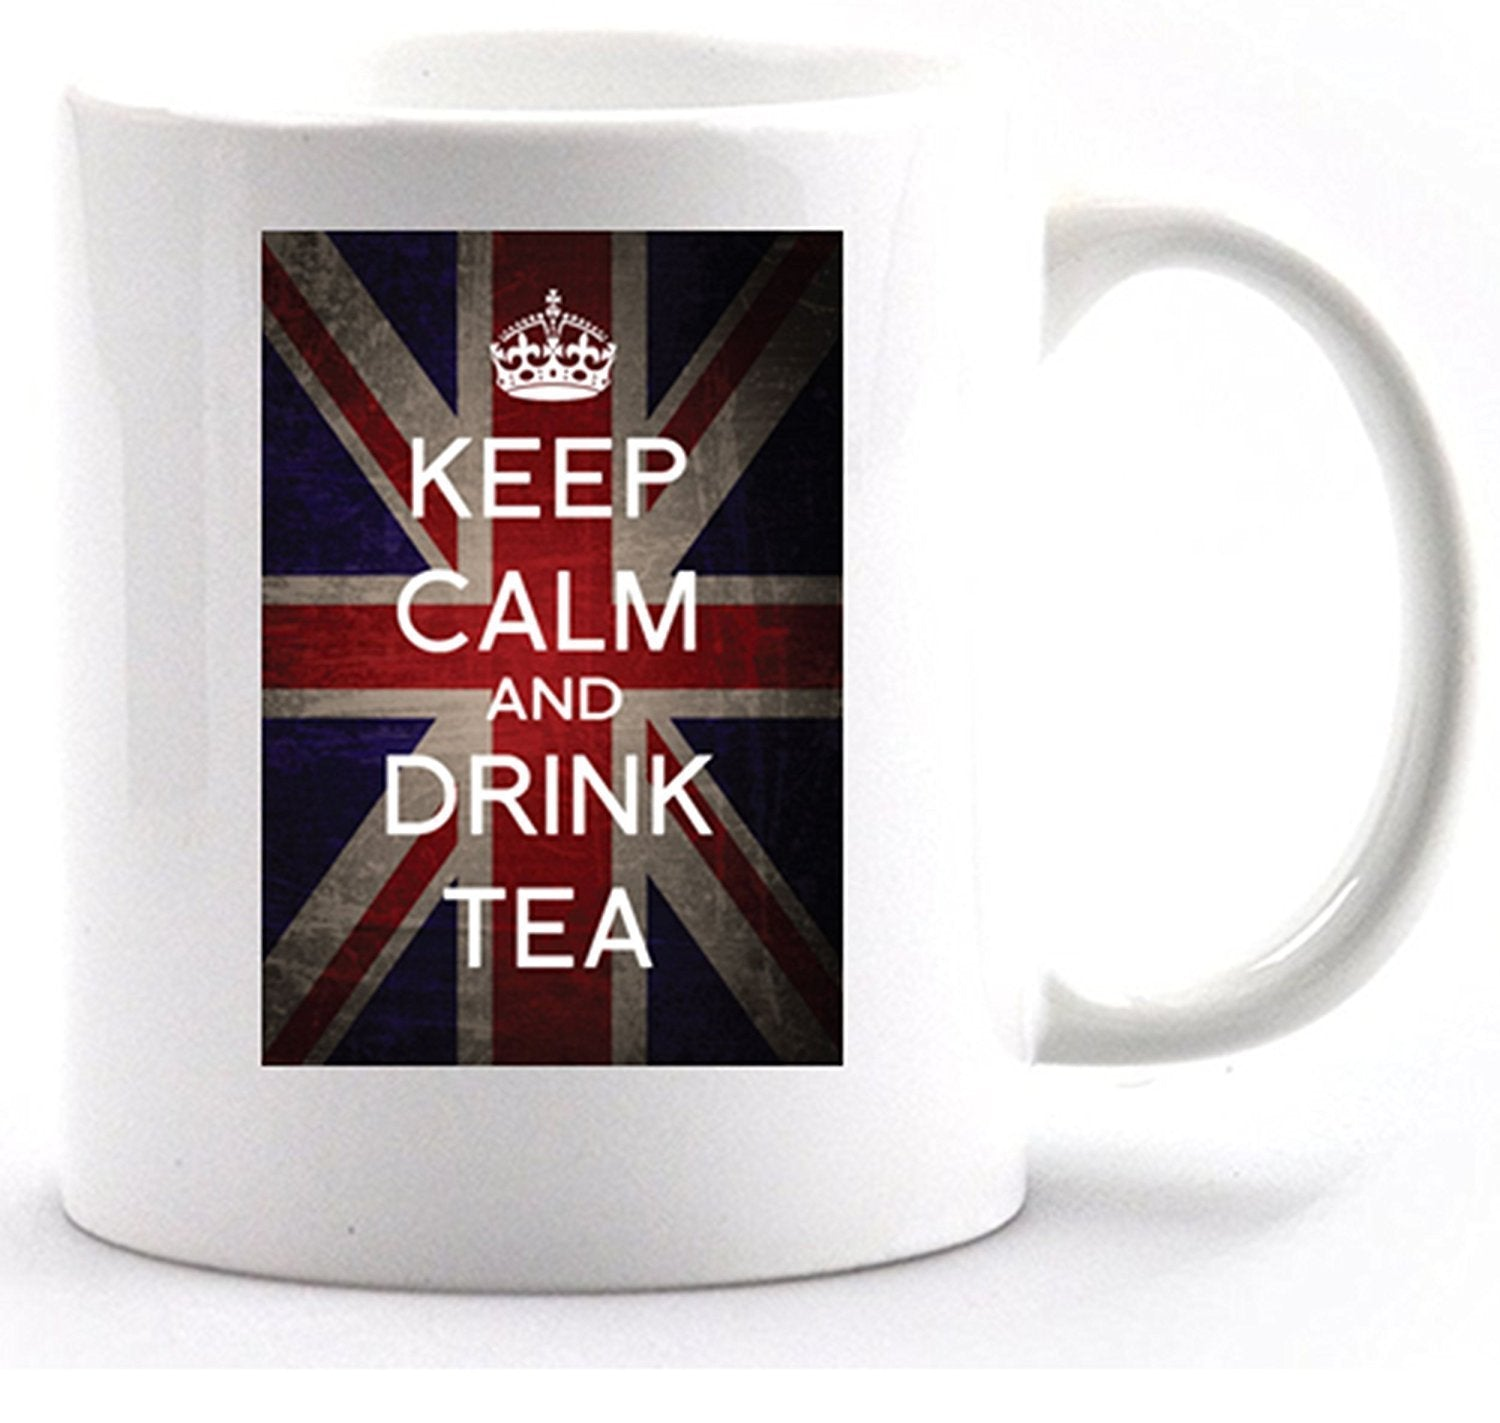 Keep Calm and drink tea mug with gift box - Bear Essentials Clothing Company